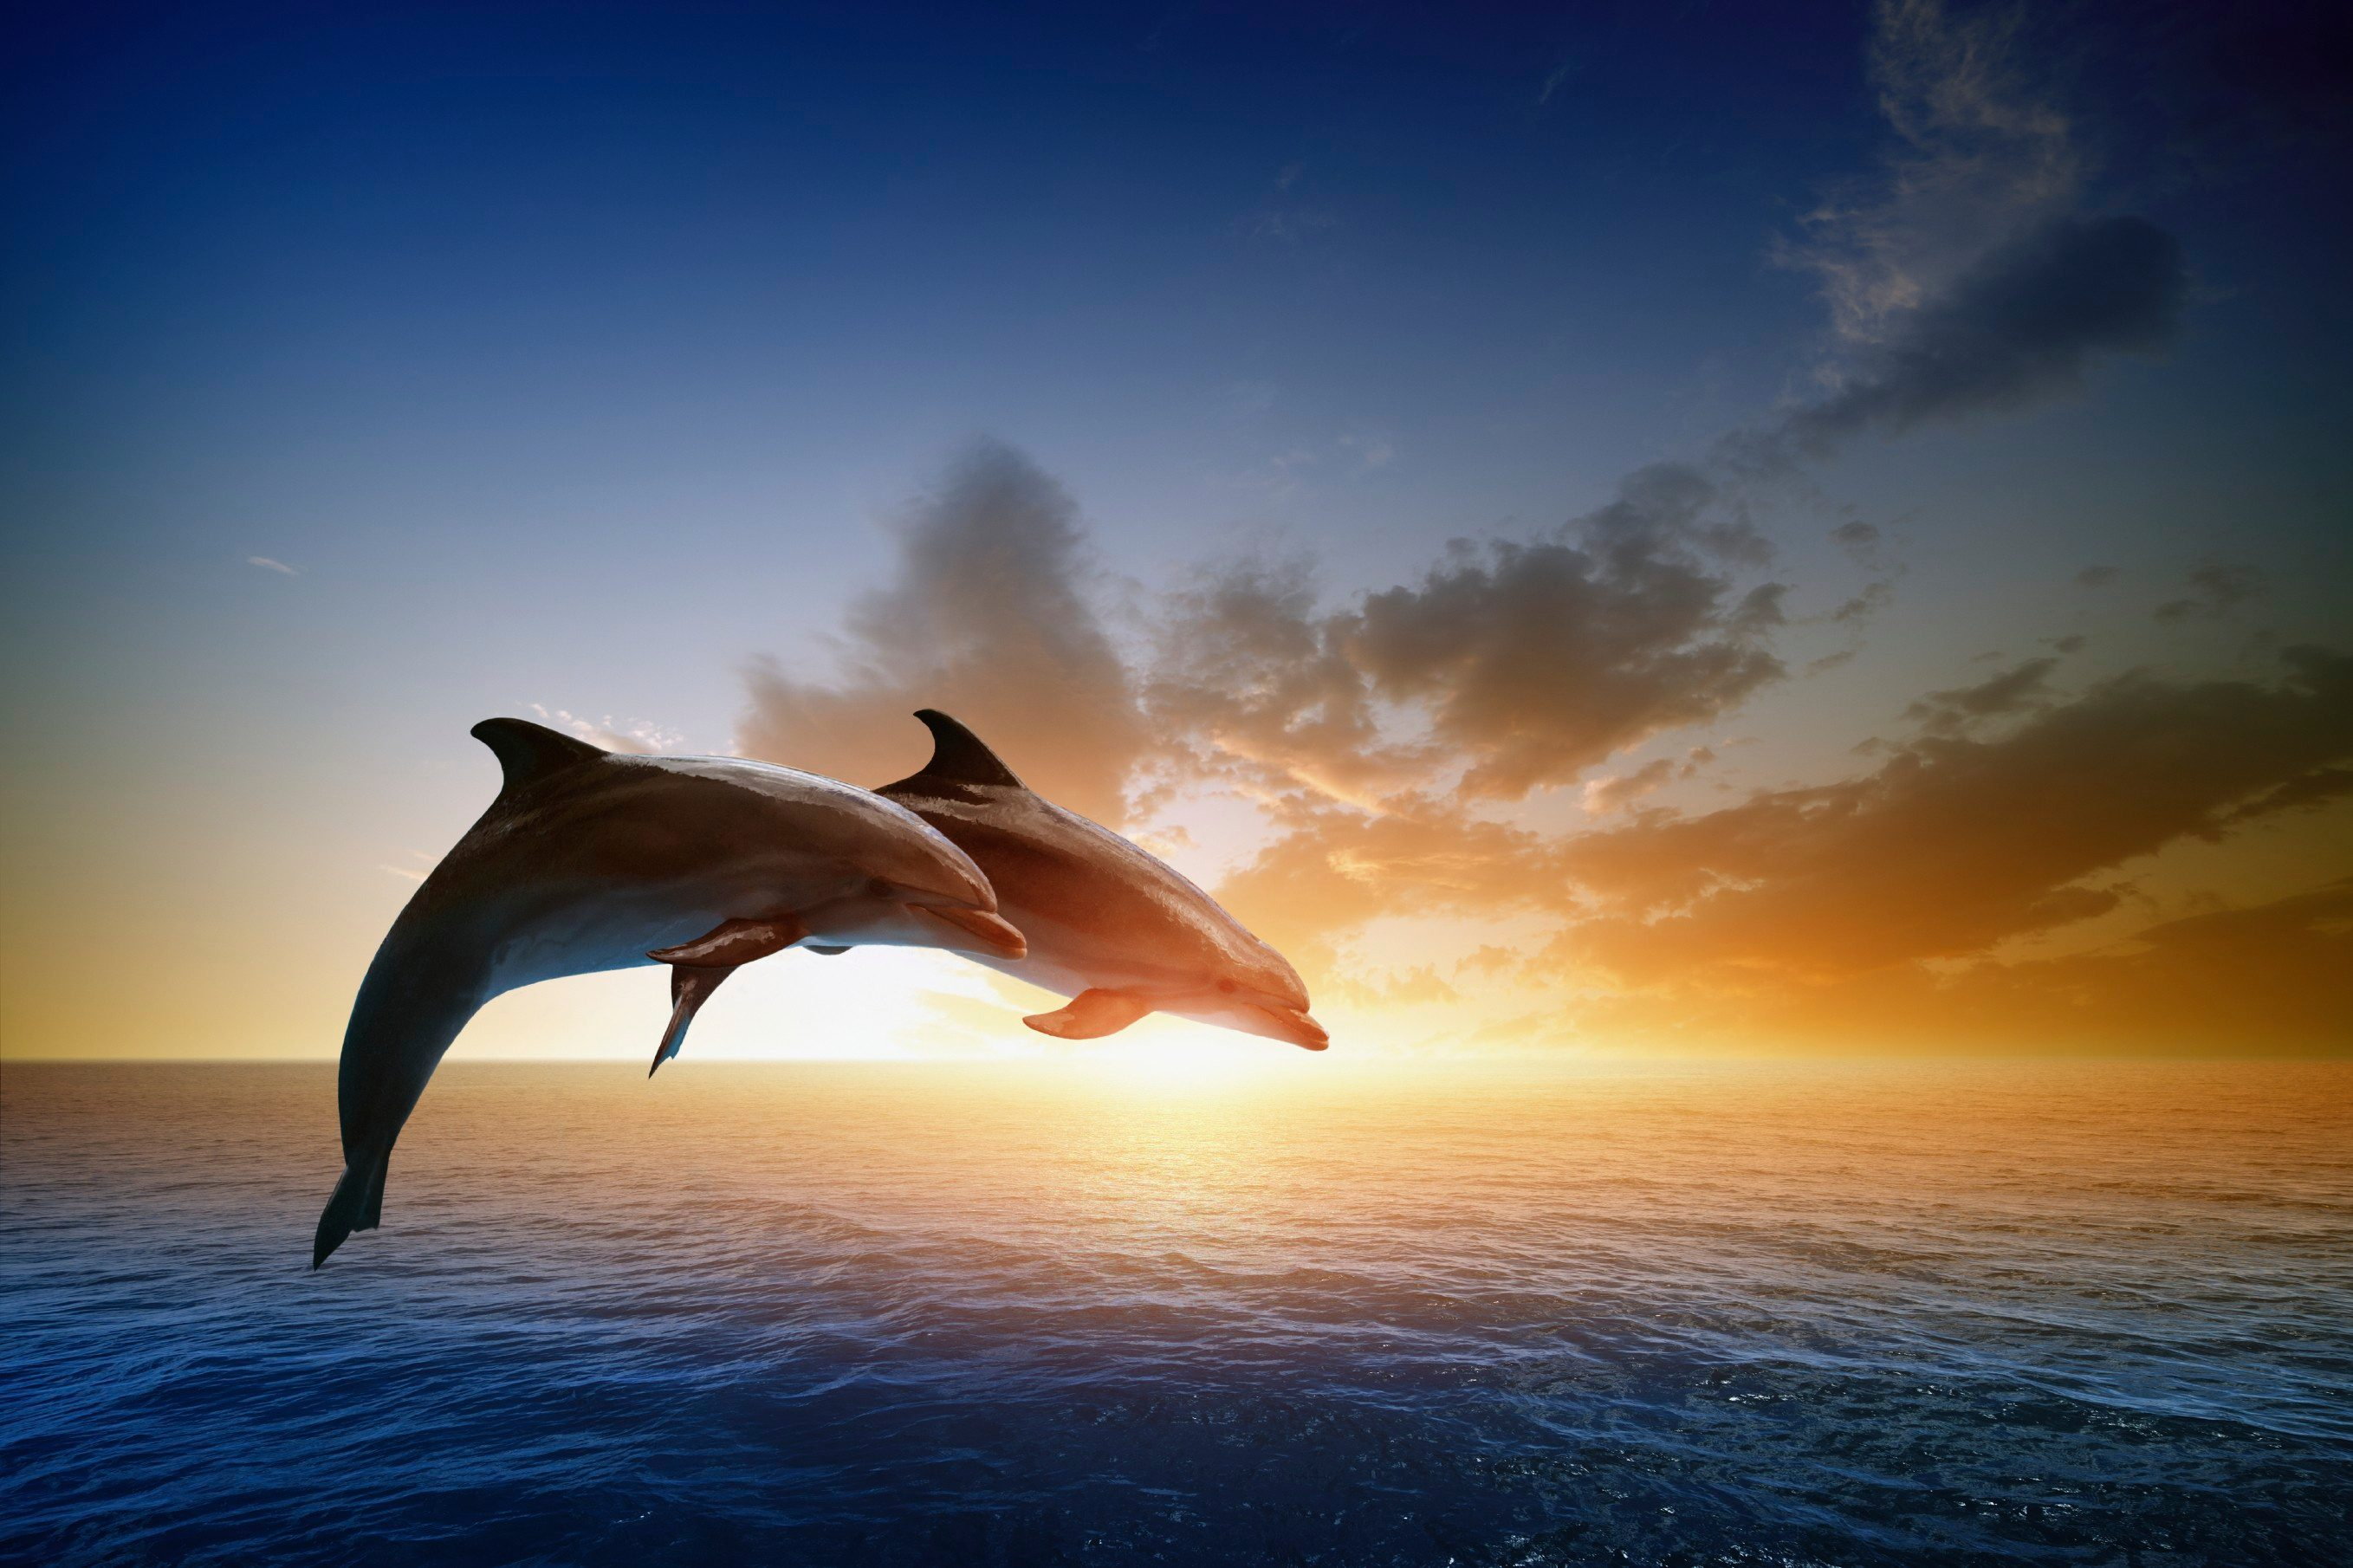 2. Dolphins See With Sound